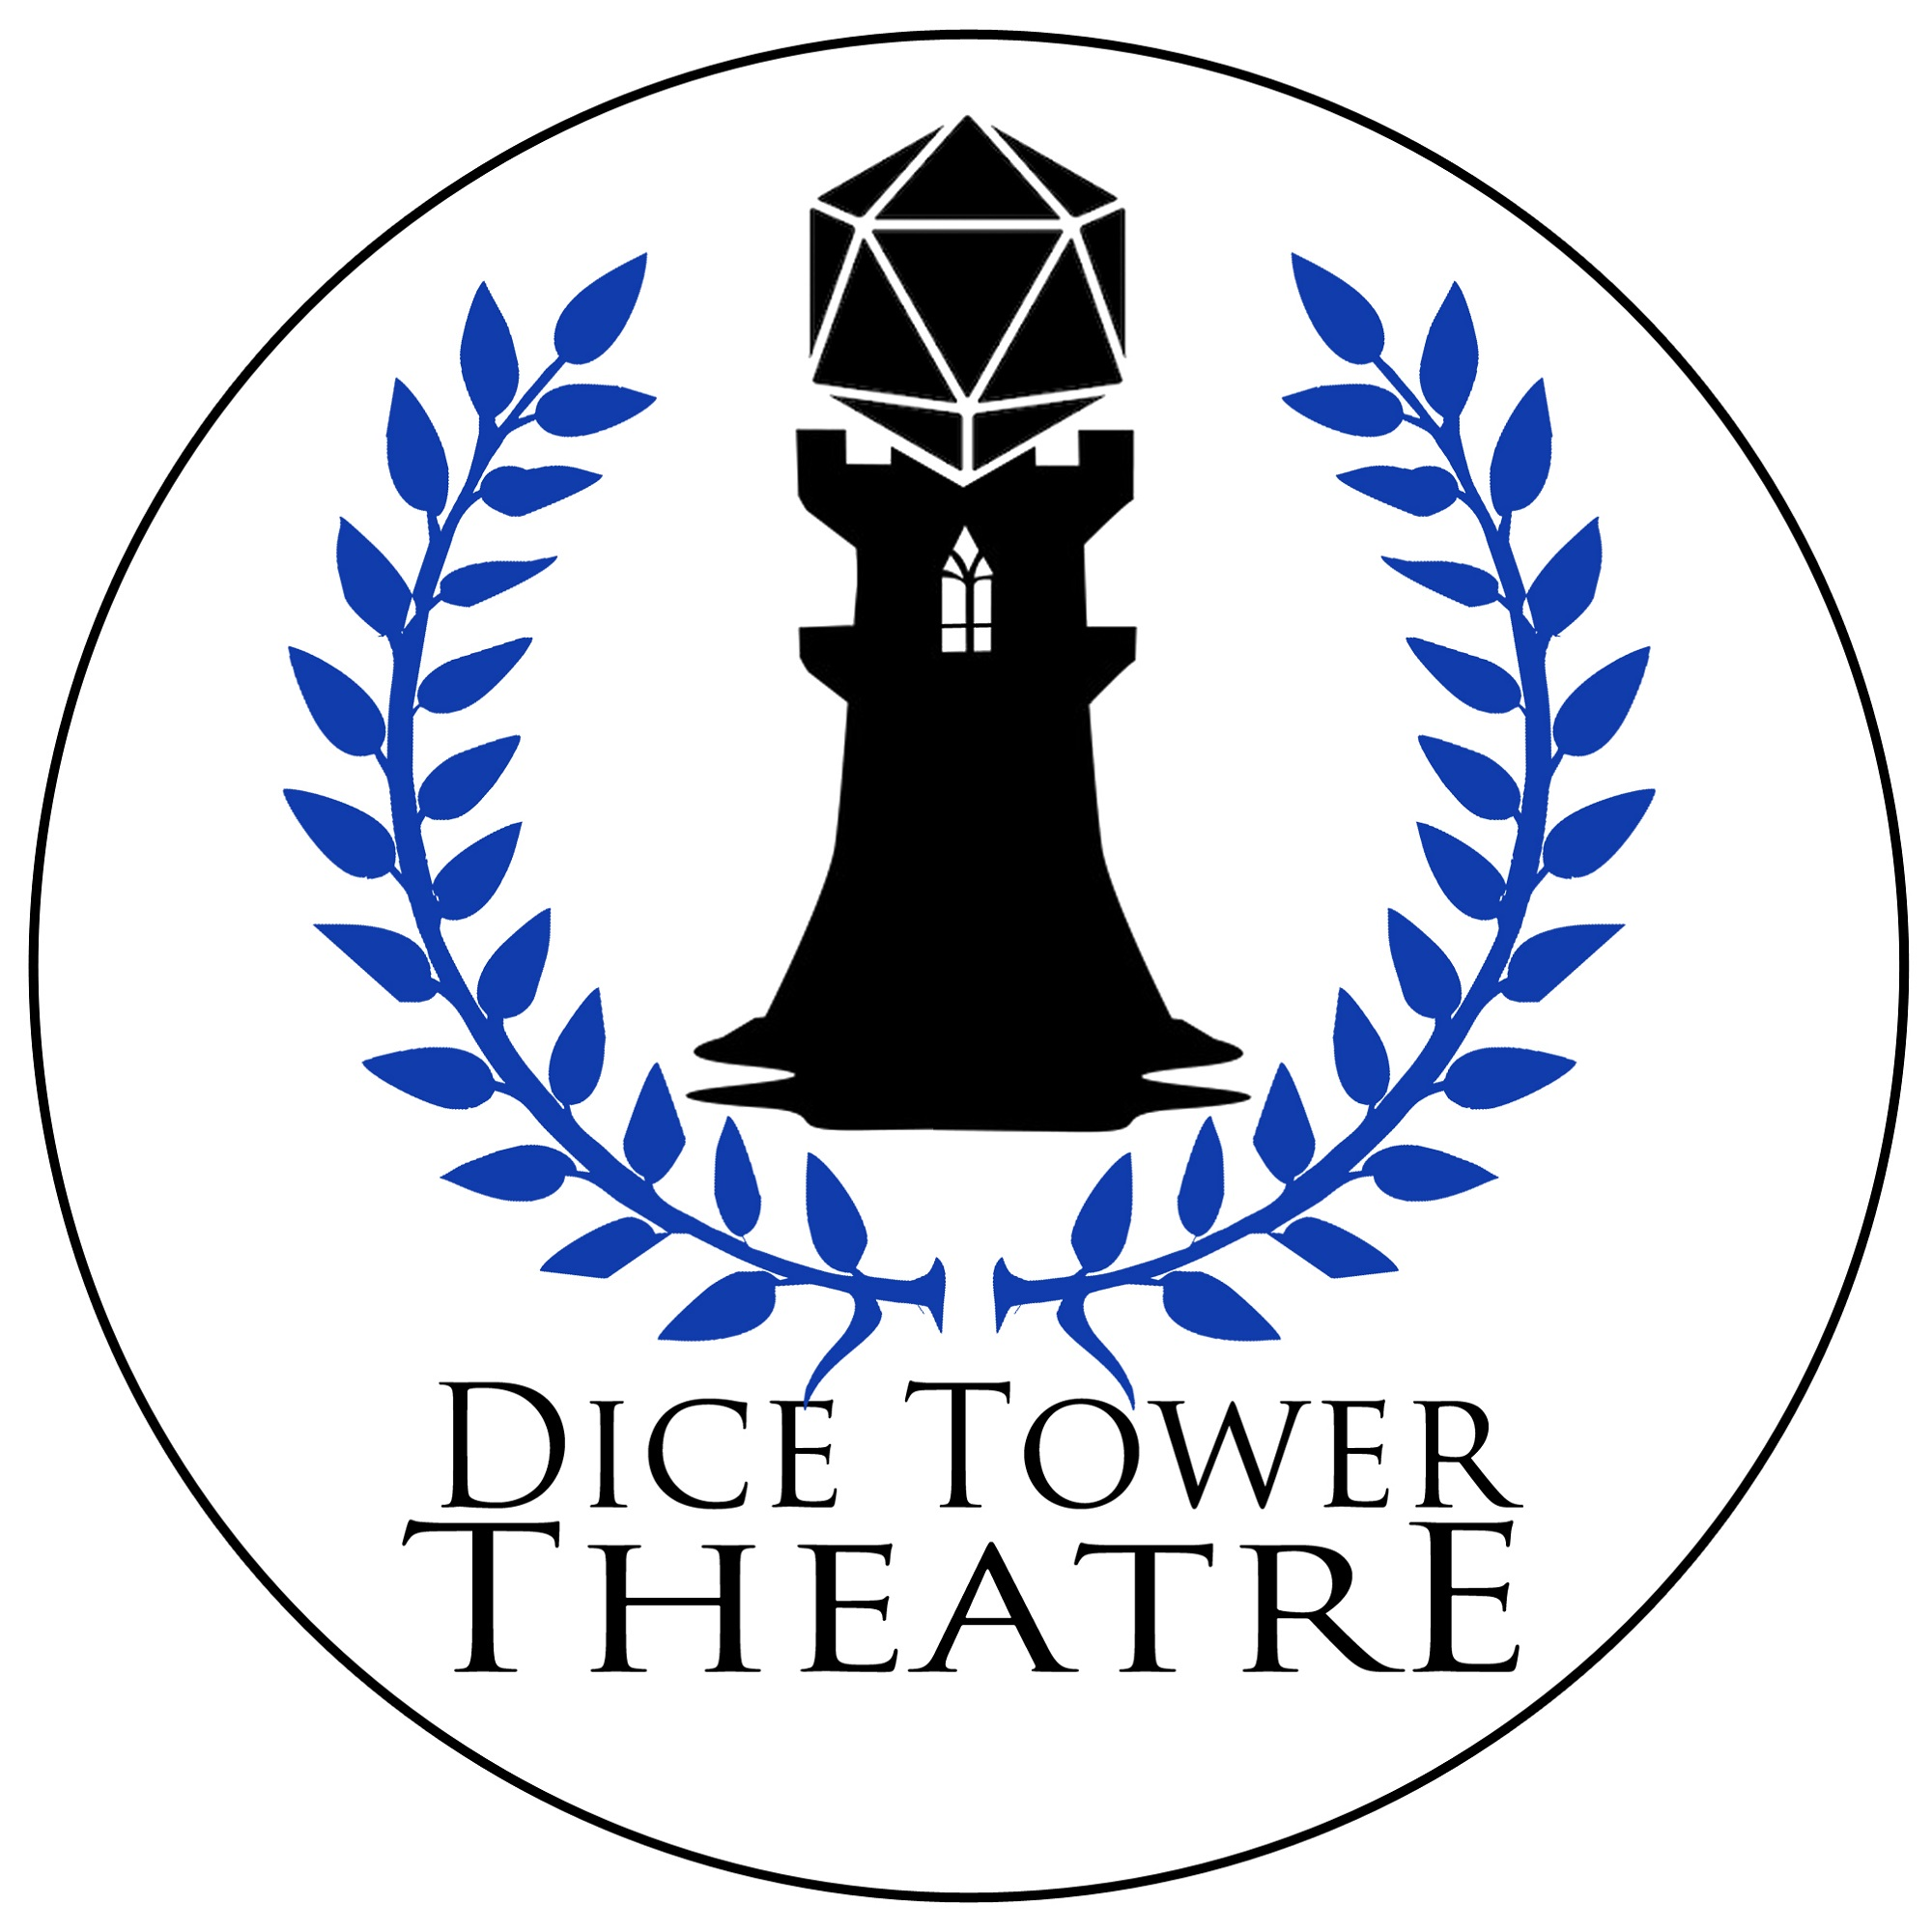 Dice Tower Theatre